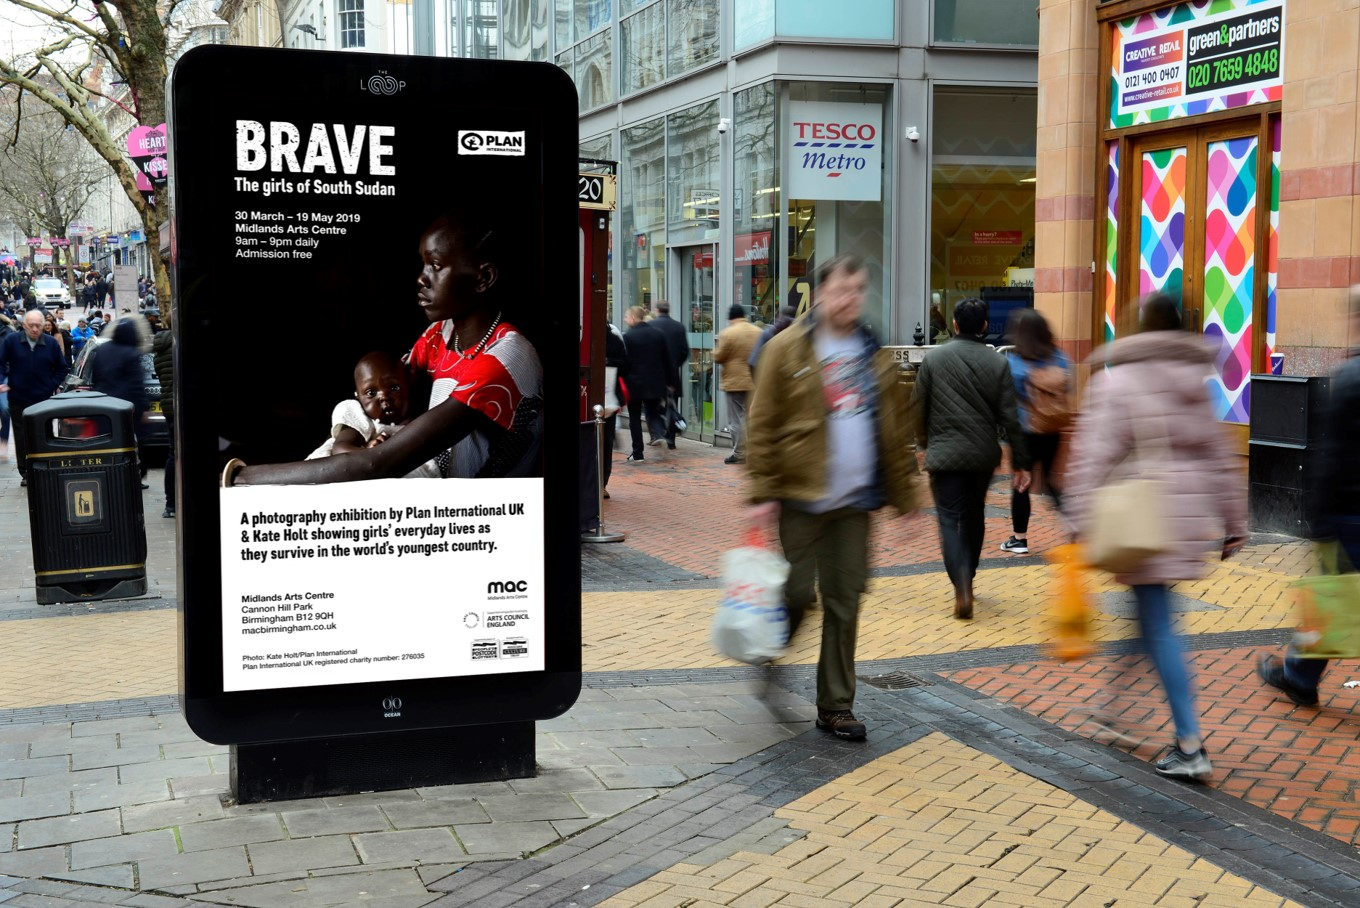 DIGITAL OOH - Digital out of home allows us to reach audiences on a granular level, selecting key sites in key locations. DOOH can be booked by day part and updated in real-time, allowing us to keep your campaign as up to date and fresh as possible.